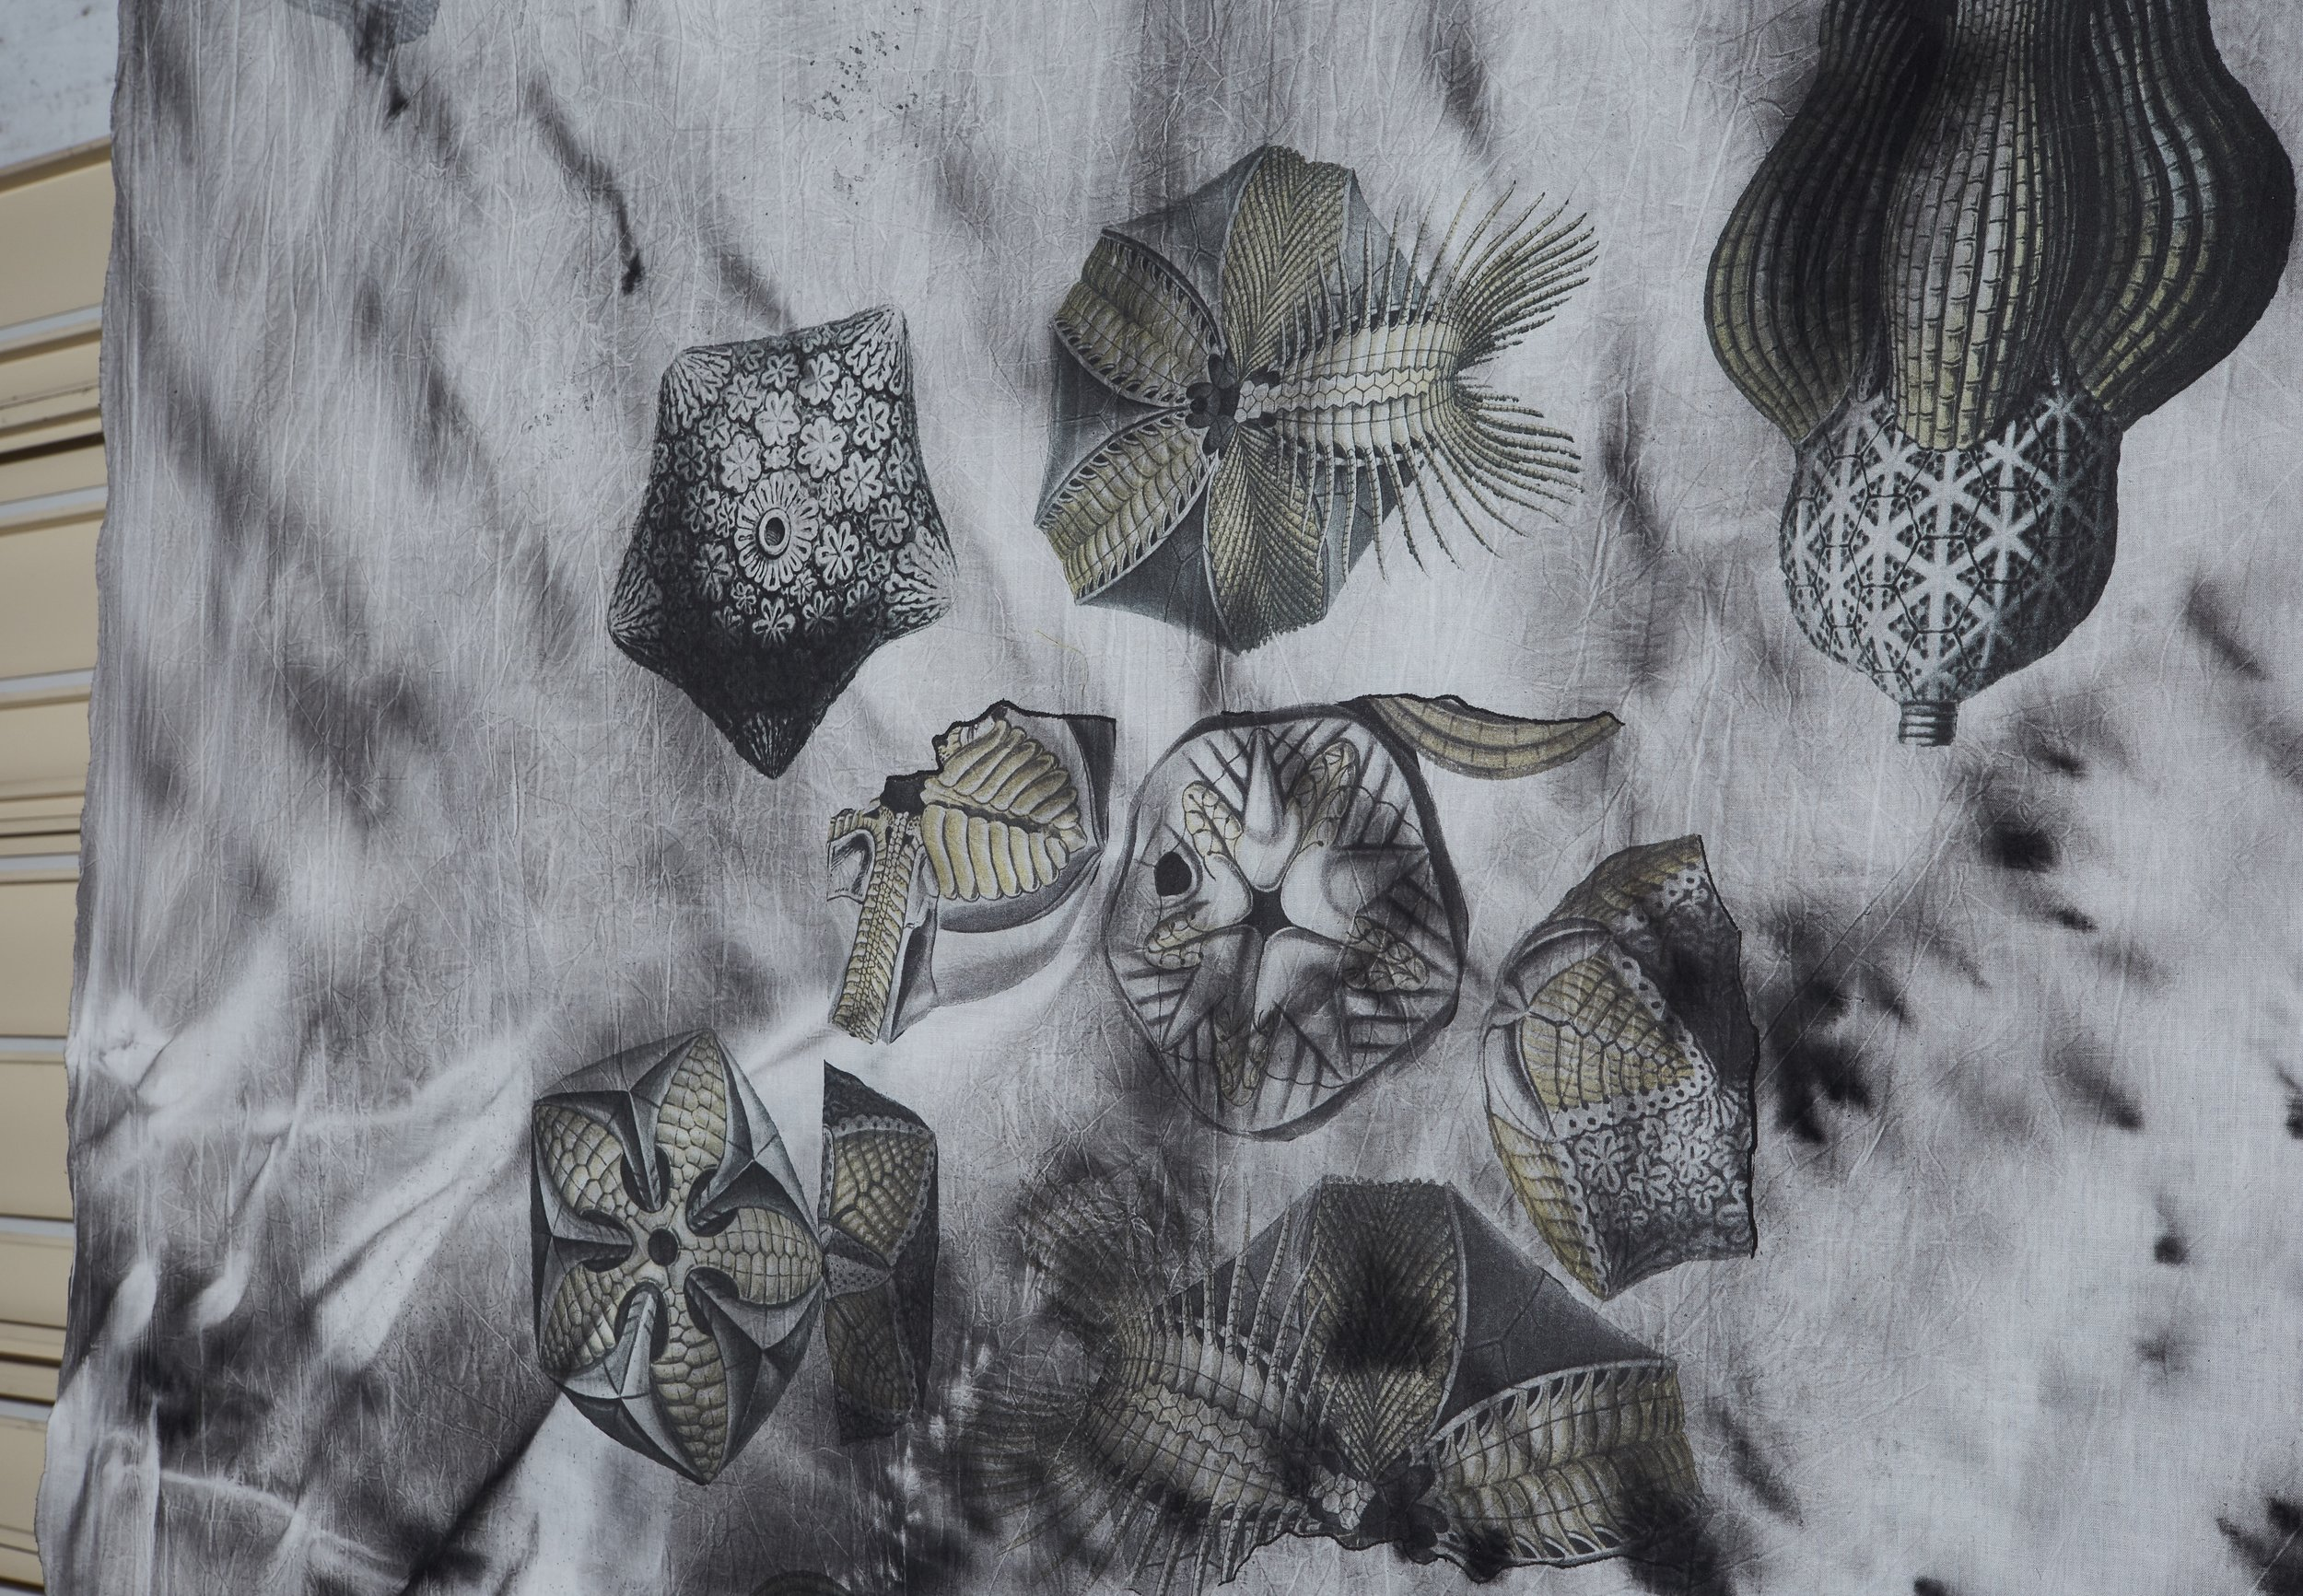 Melbourne hand crafted textiles